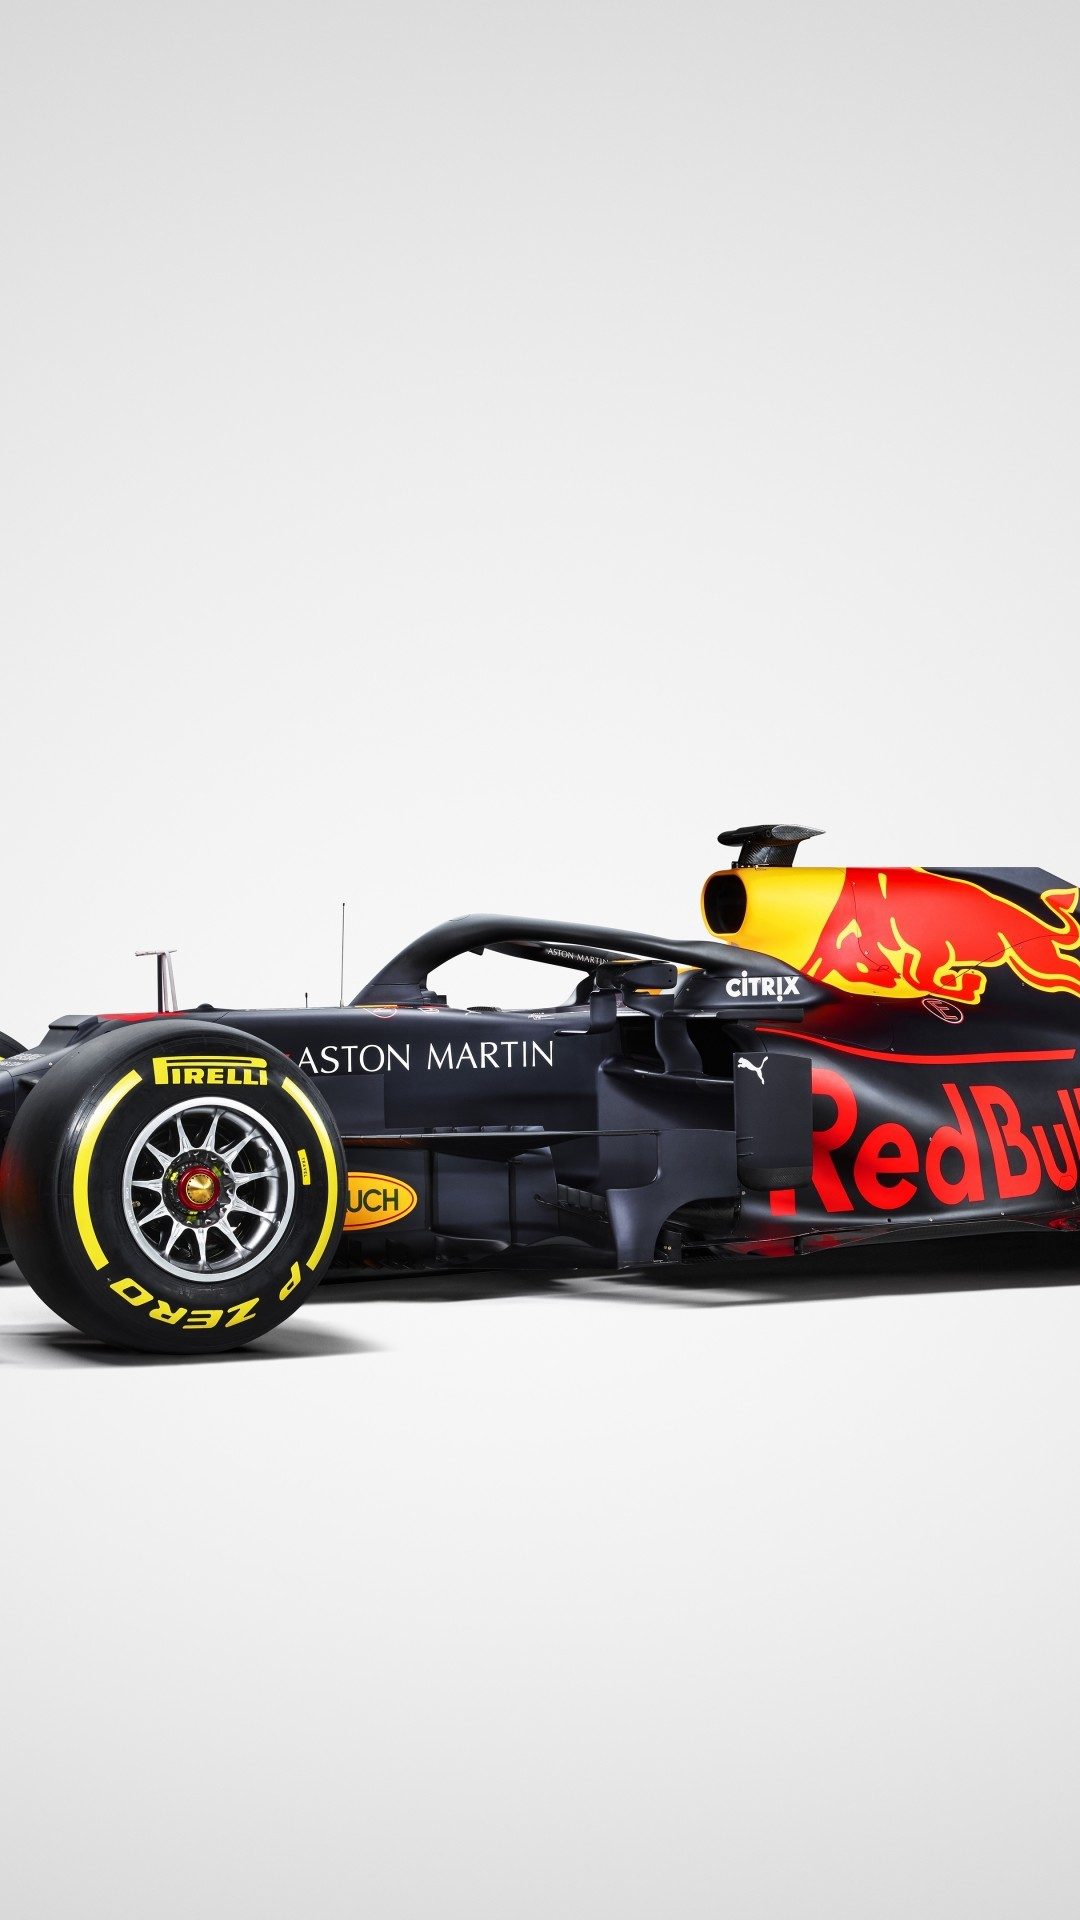 Download 1080x1920 Red Bull Rb15 Formula 1 Racing Cars Side 1080x1920